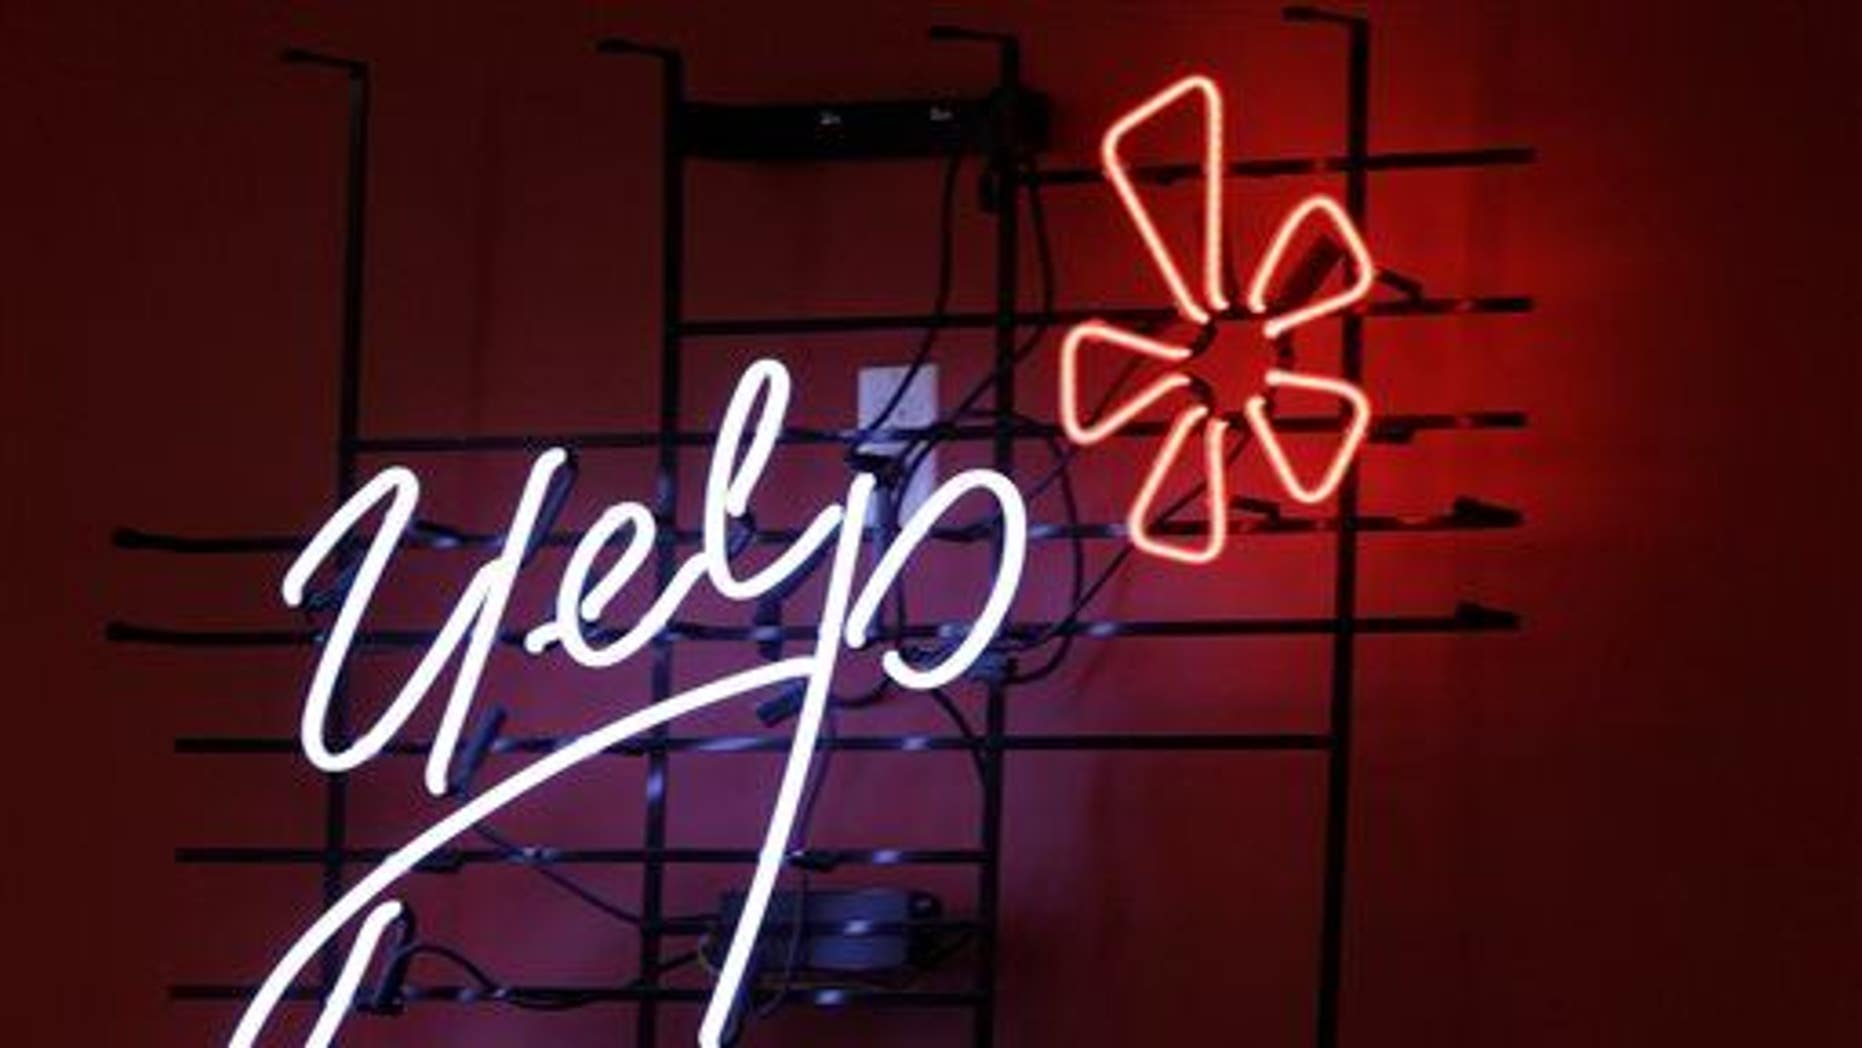 The logo of the online reviews website Yelp on a wall at the company's offices in New York.